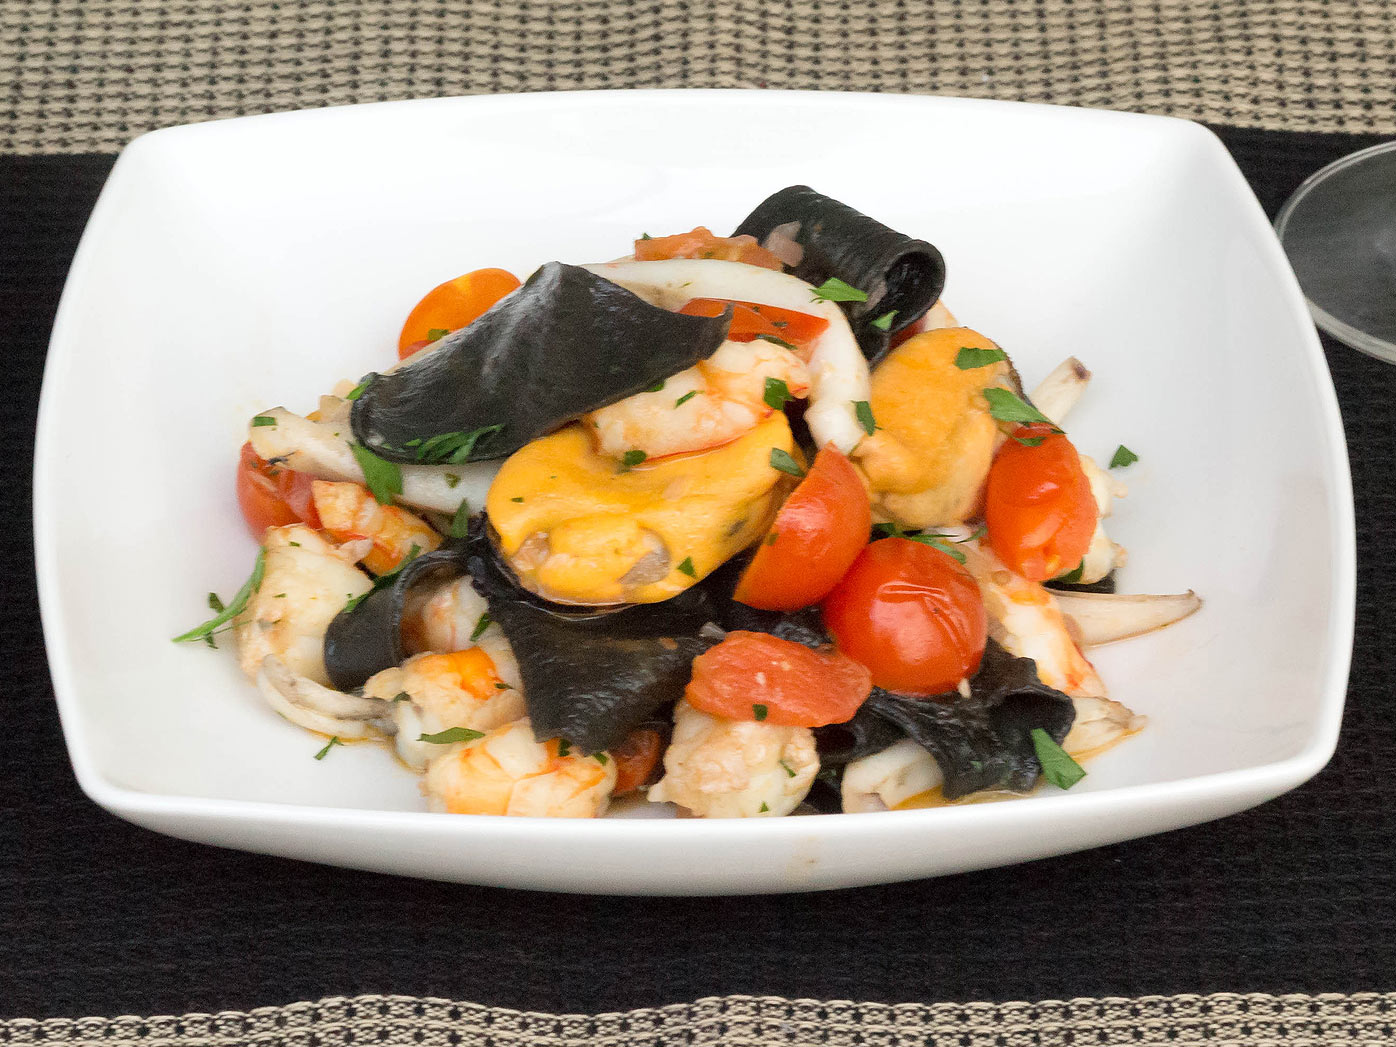 Black stracci pasta with mussels, cuttlefish and prawns